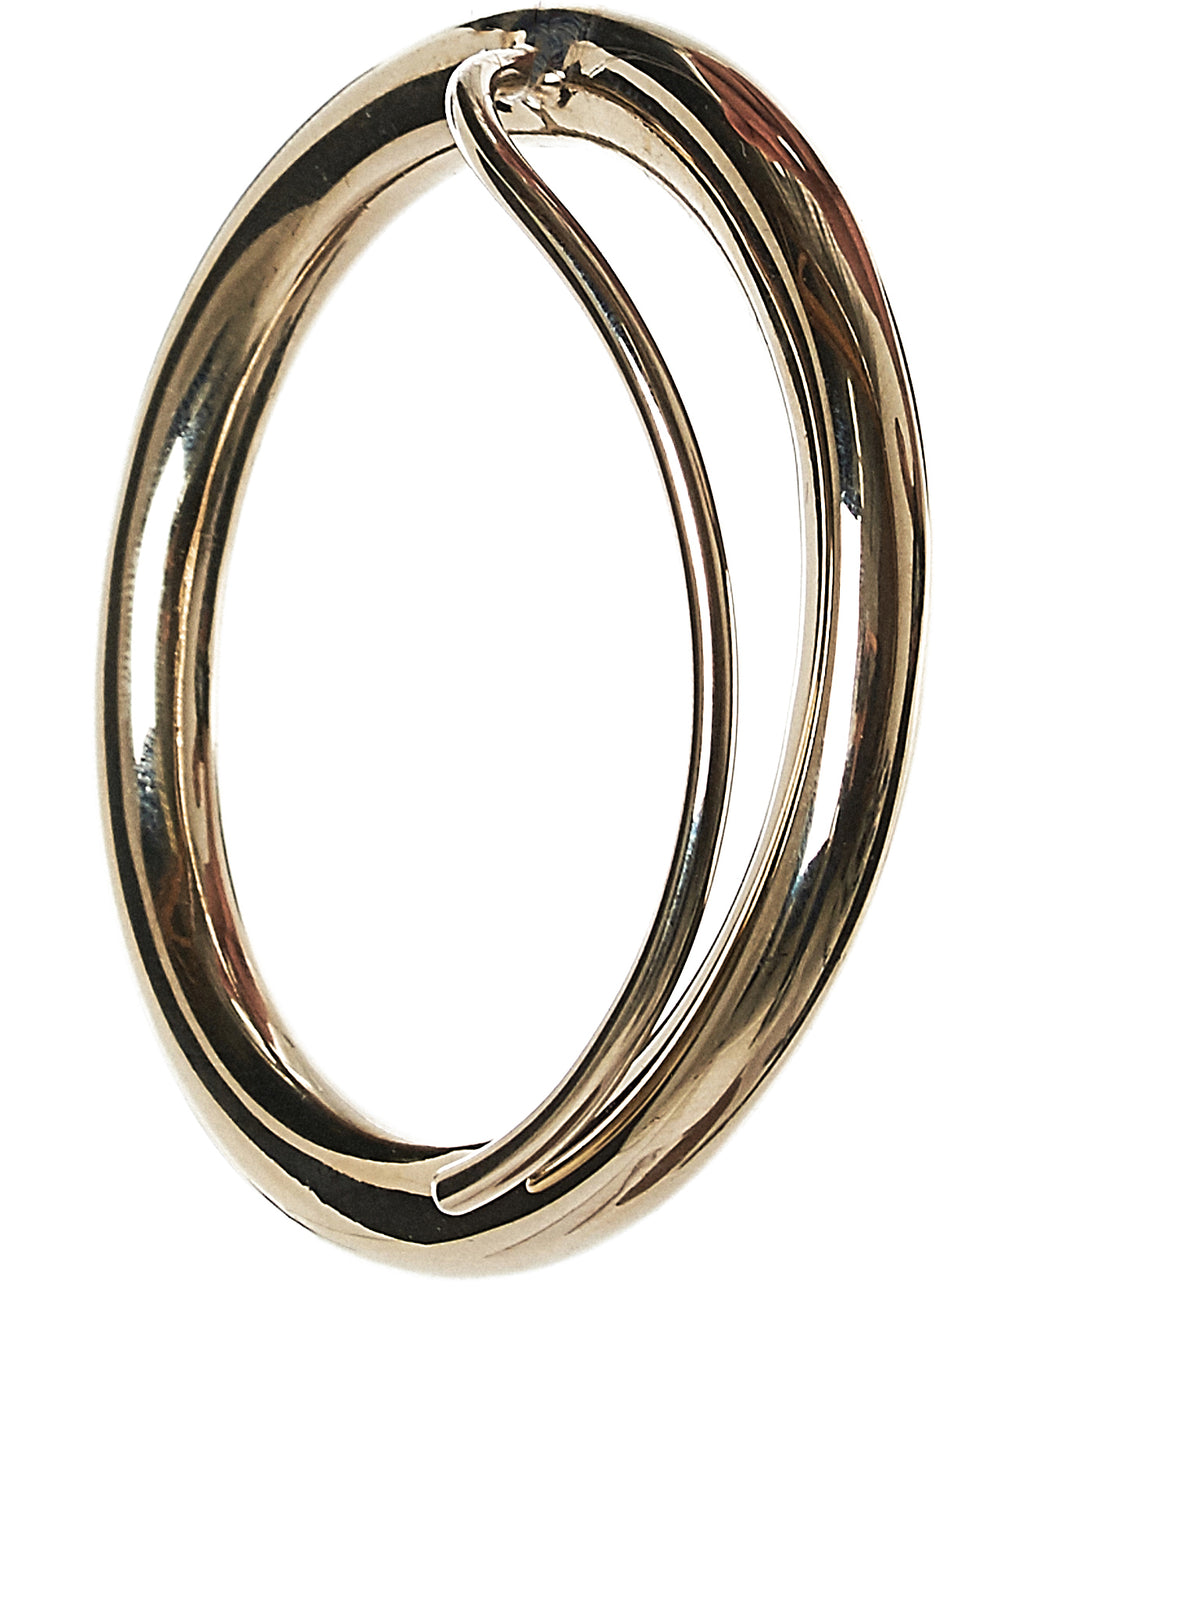 Gold Hoop Earring (KMH07-GOLD)